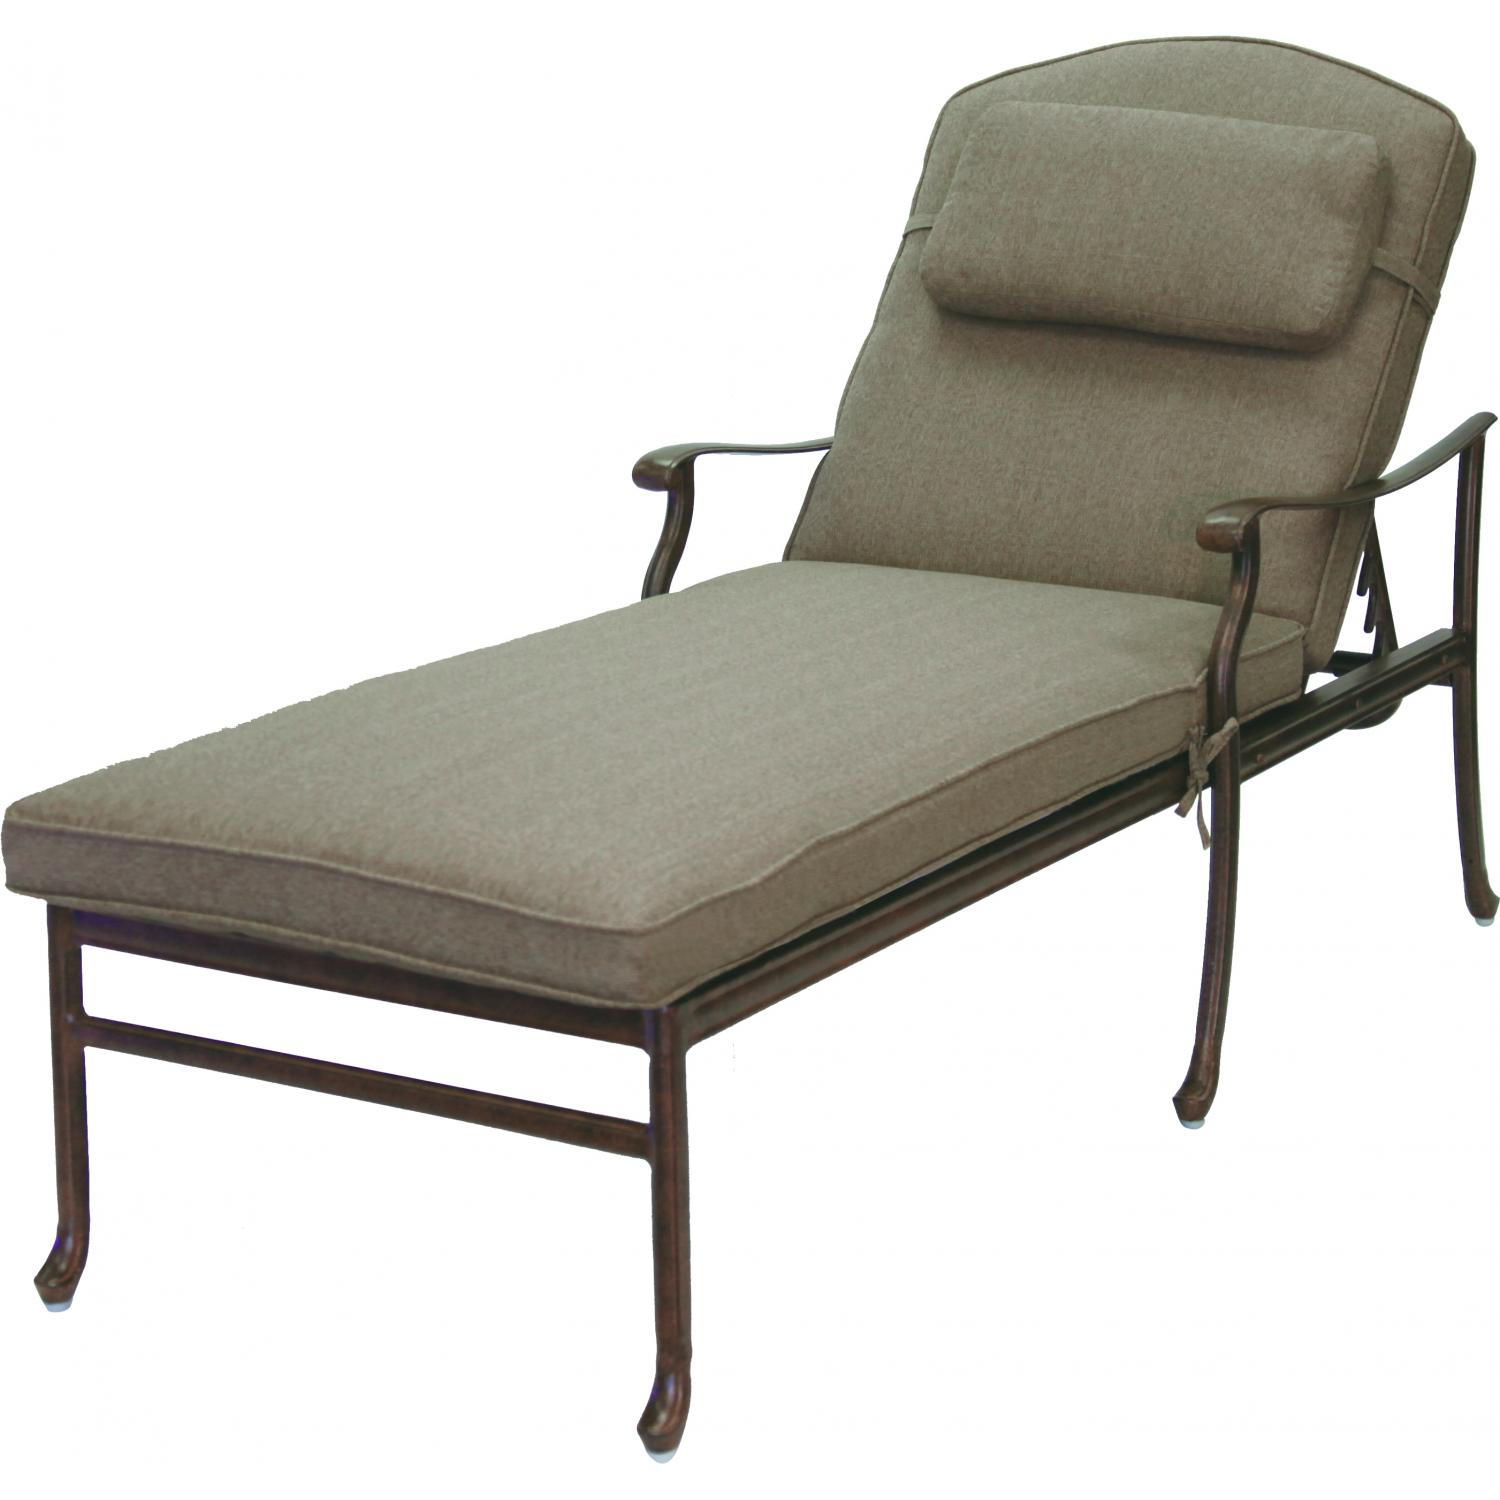 Darlee Sedona Cast Aluminum Patio Chaise Lounge - Antique Bronze at Sears.com